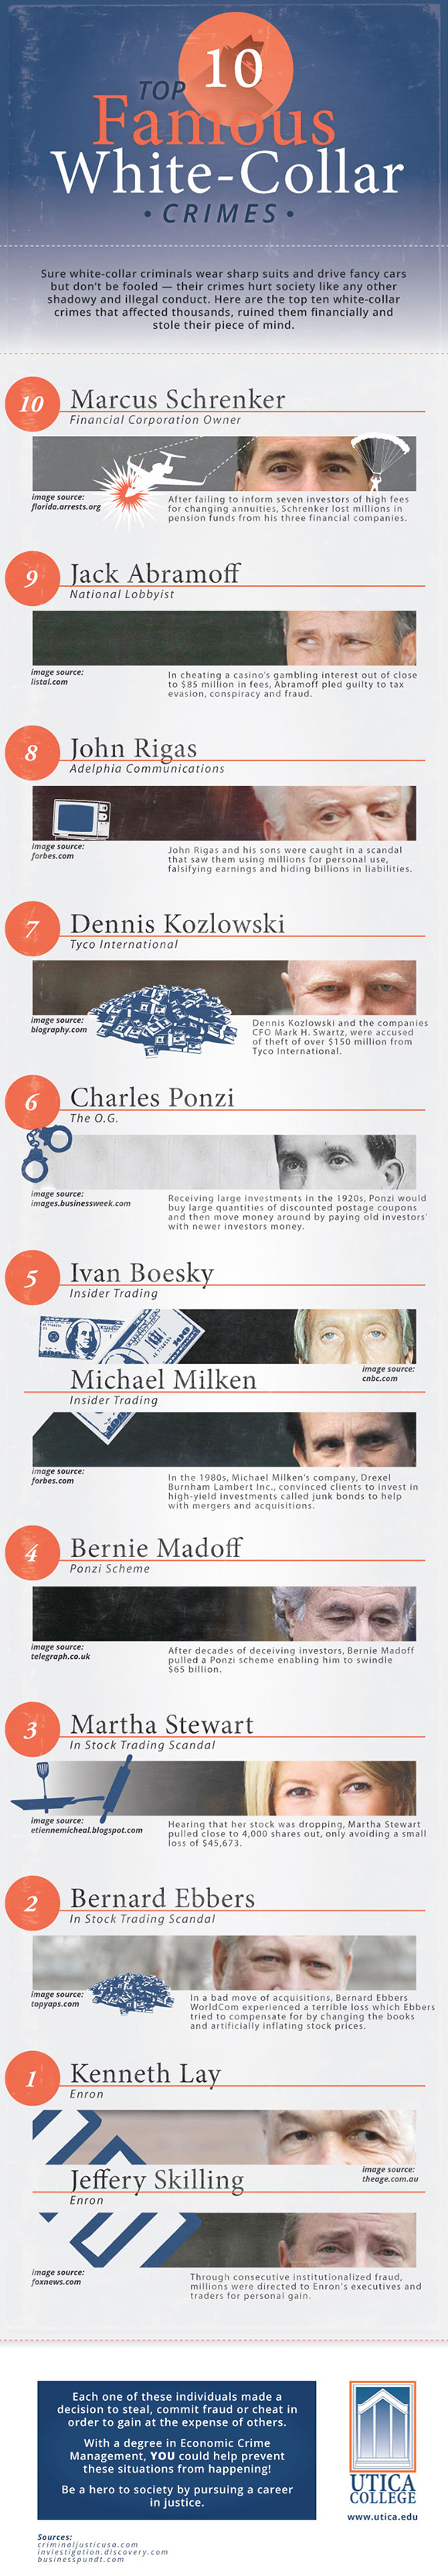 Most Famous White Collar Crime